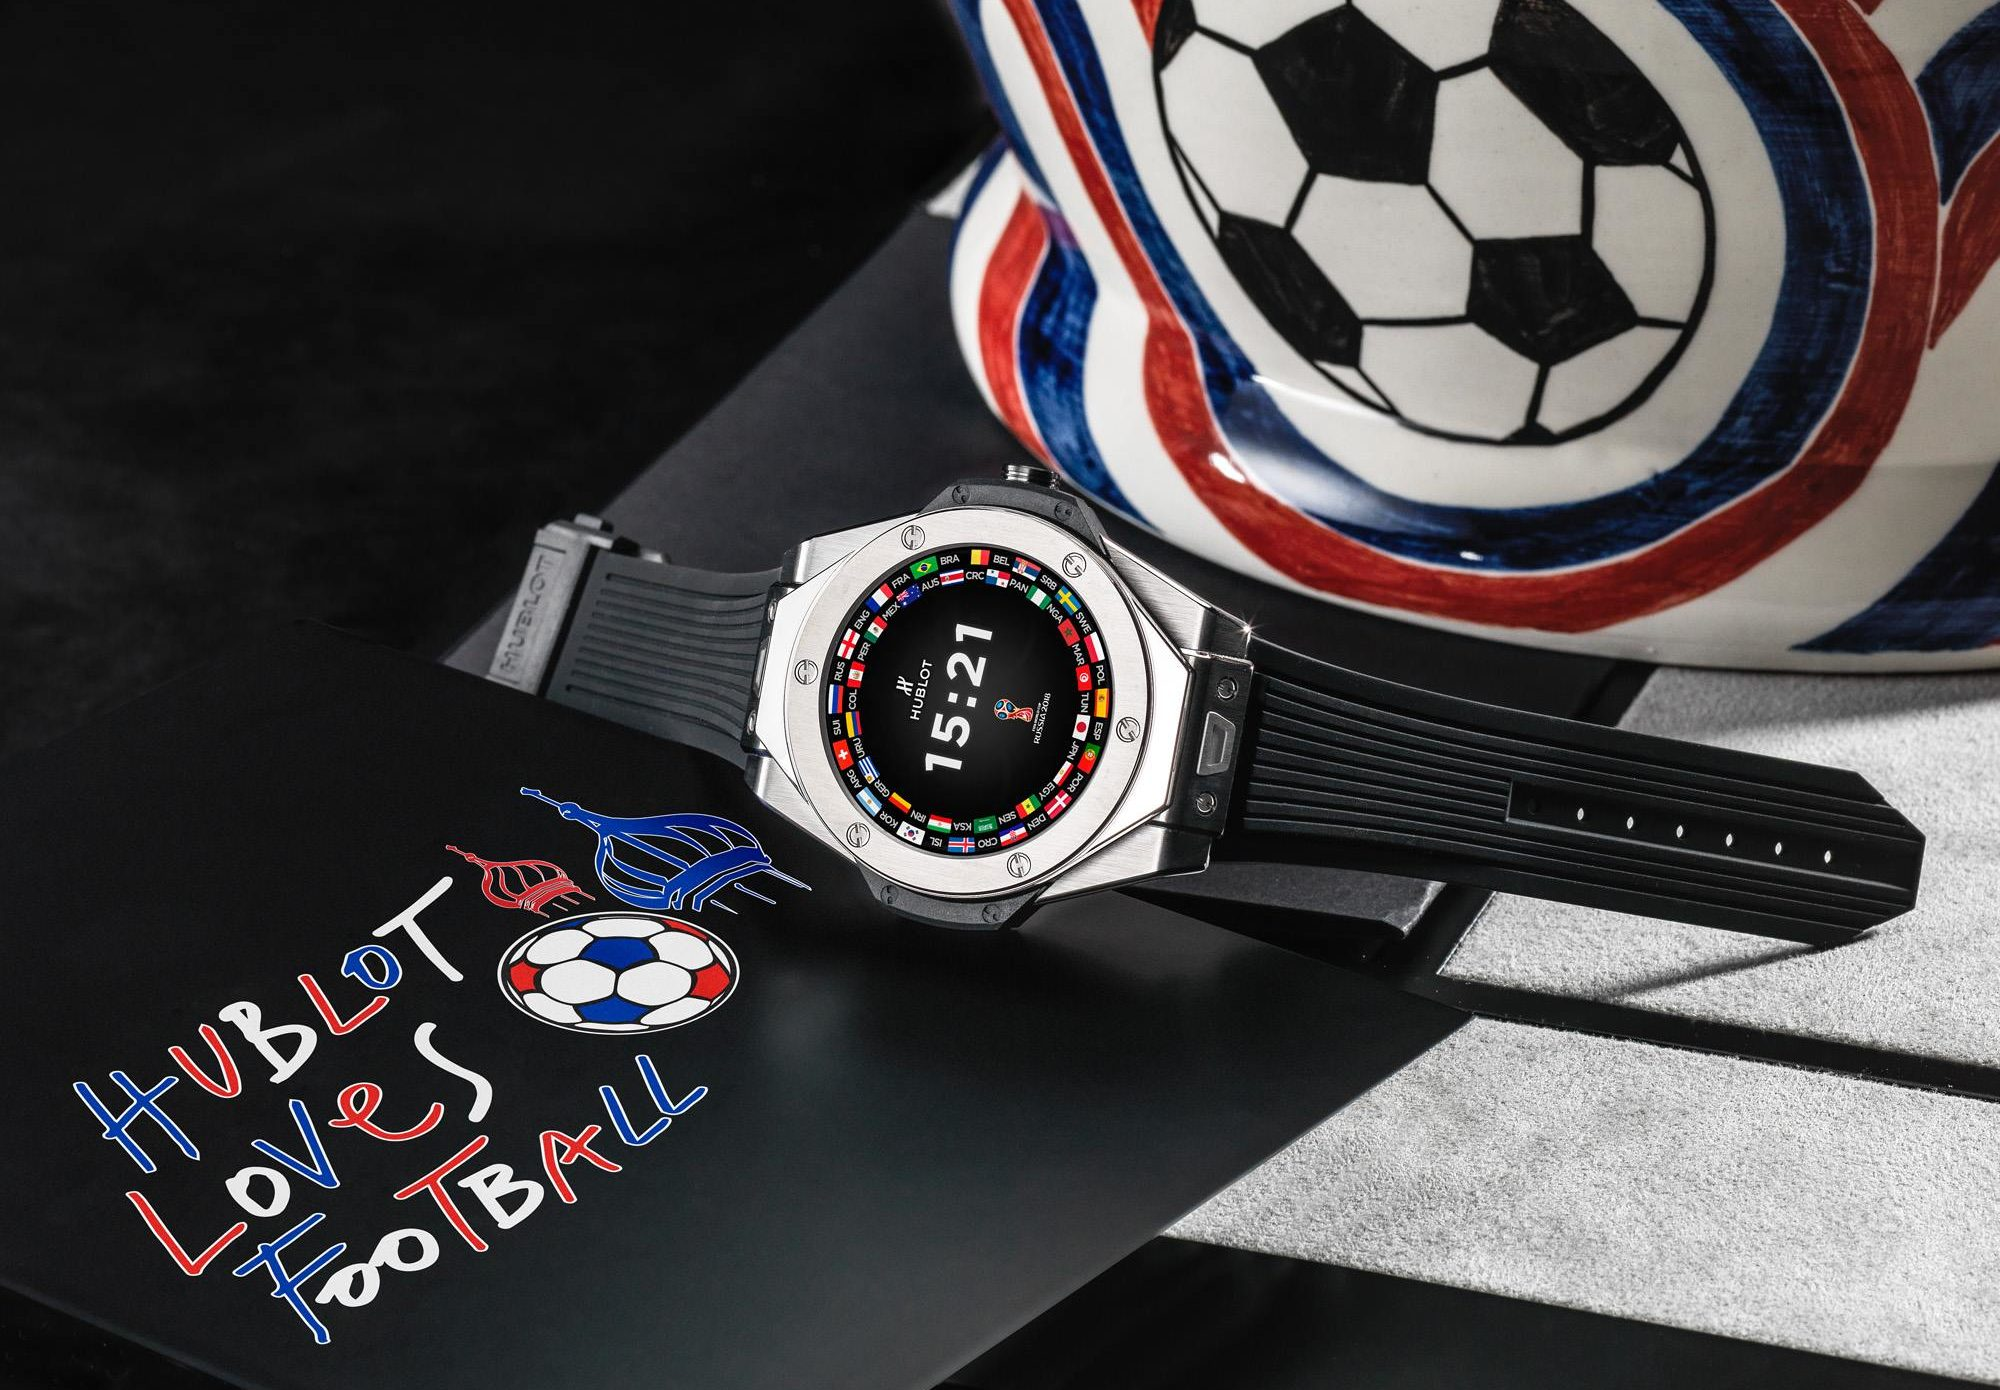 Hublot S 5 200 Wear Os Watch To Be Worn By 2018 Fifa